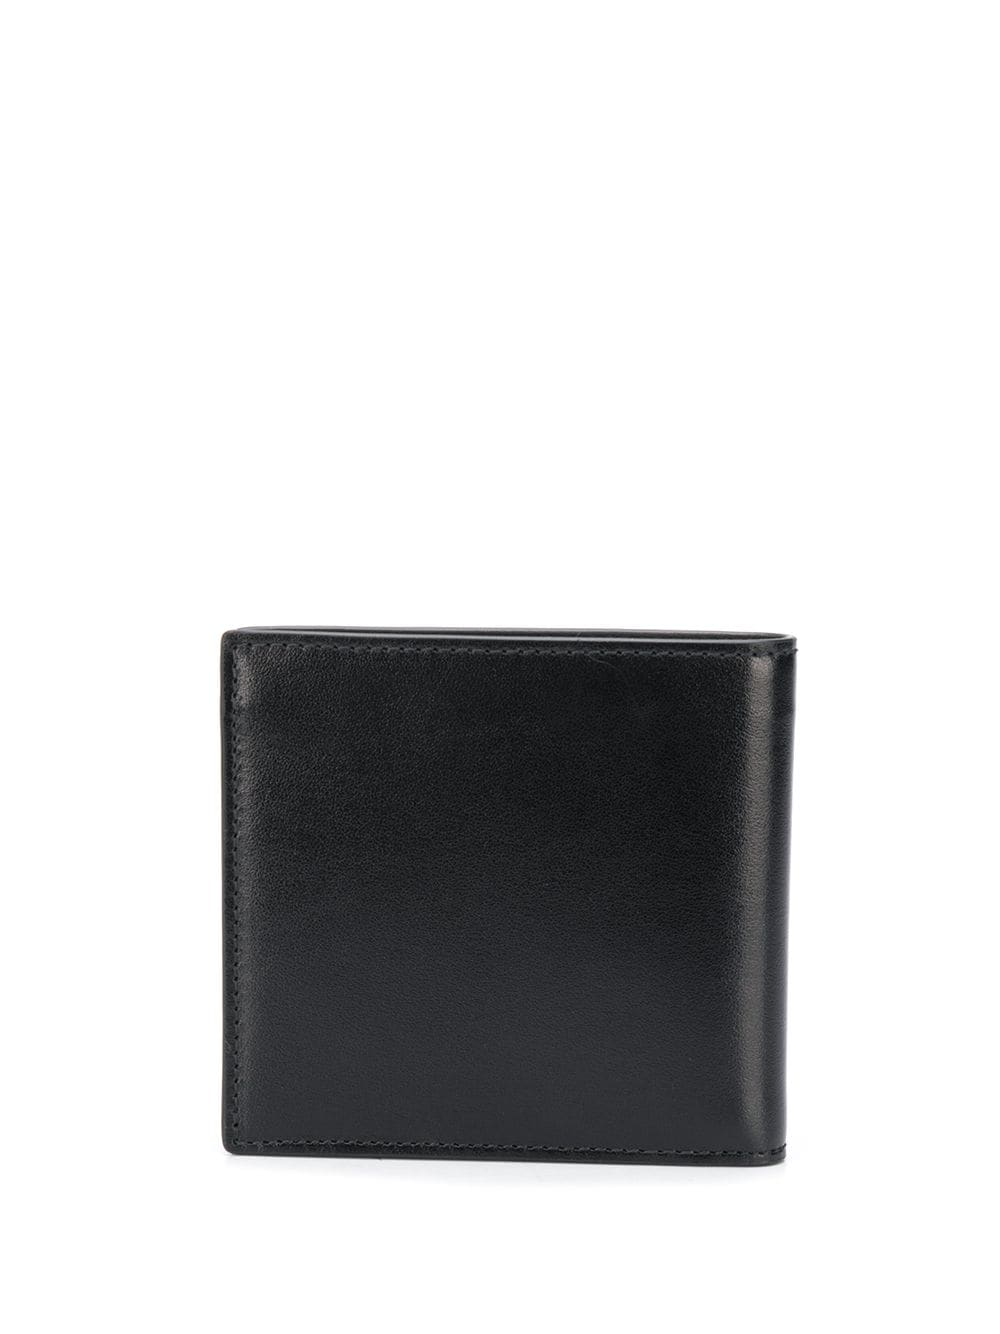 ALEXANDER MCQUEEN Embossed Logo Wallet Black - Maison De Fashion